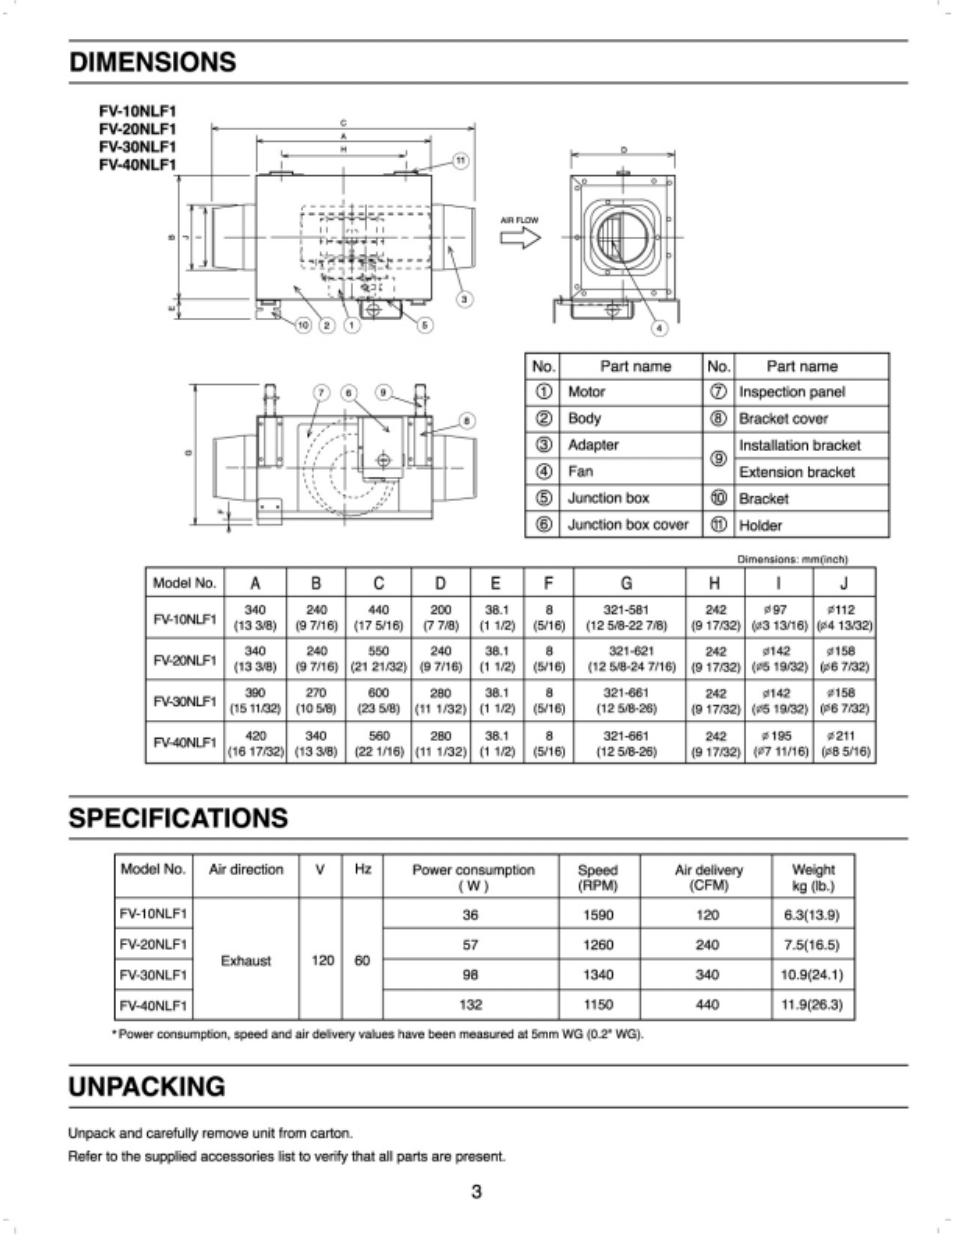 Dimensions Specifications Unng Panasonic Fv 20nlf1 User Manual Page 3